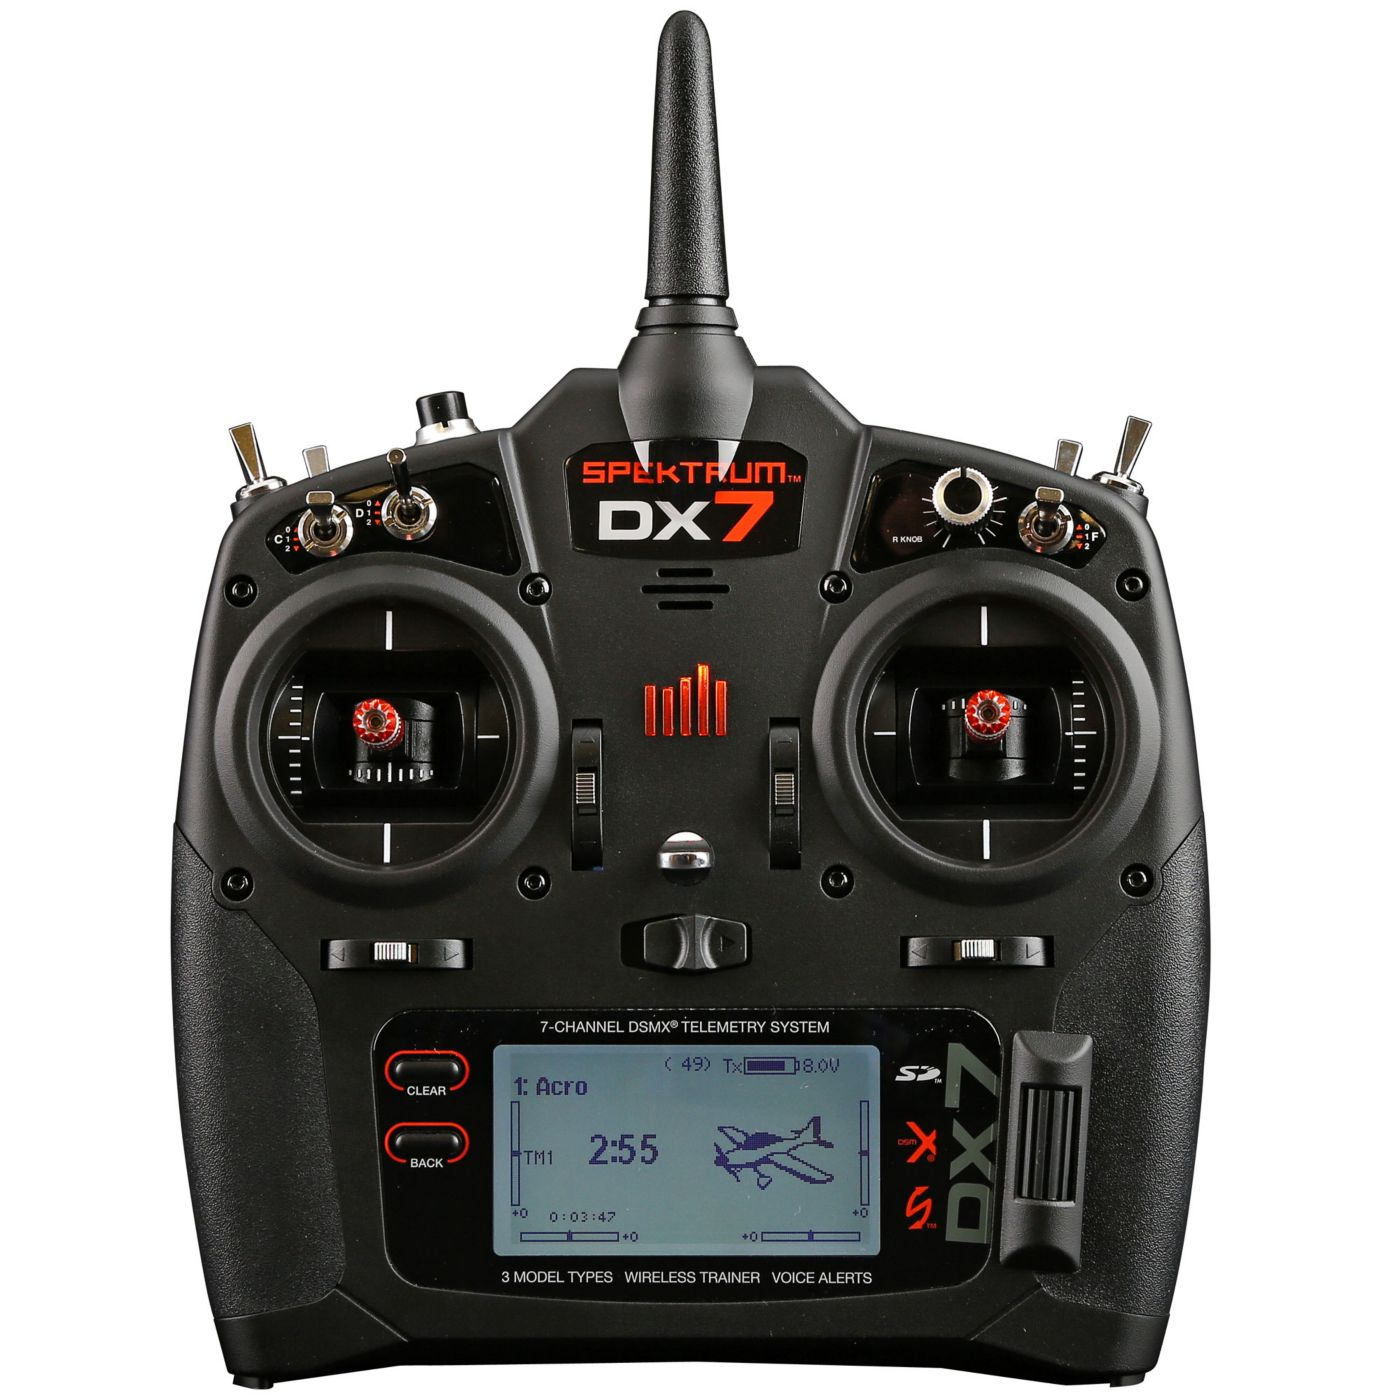 hight resolution of image for dx7 7 channel dsmx transmitter gen 2 with ar8000 mode 2 from